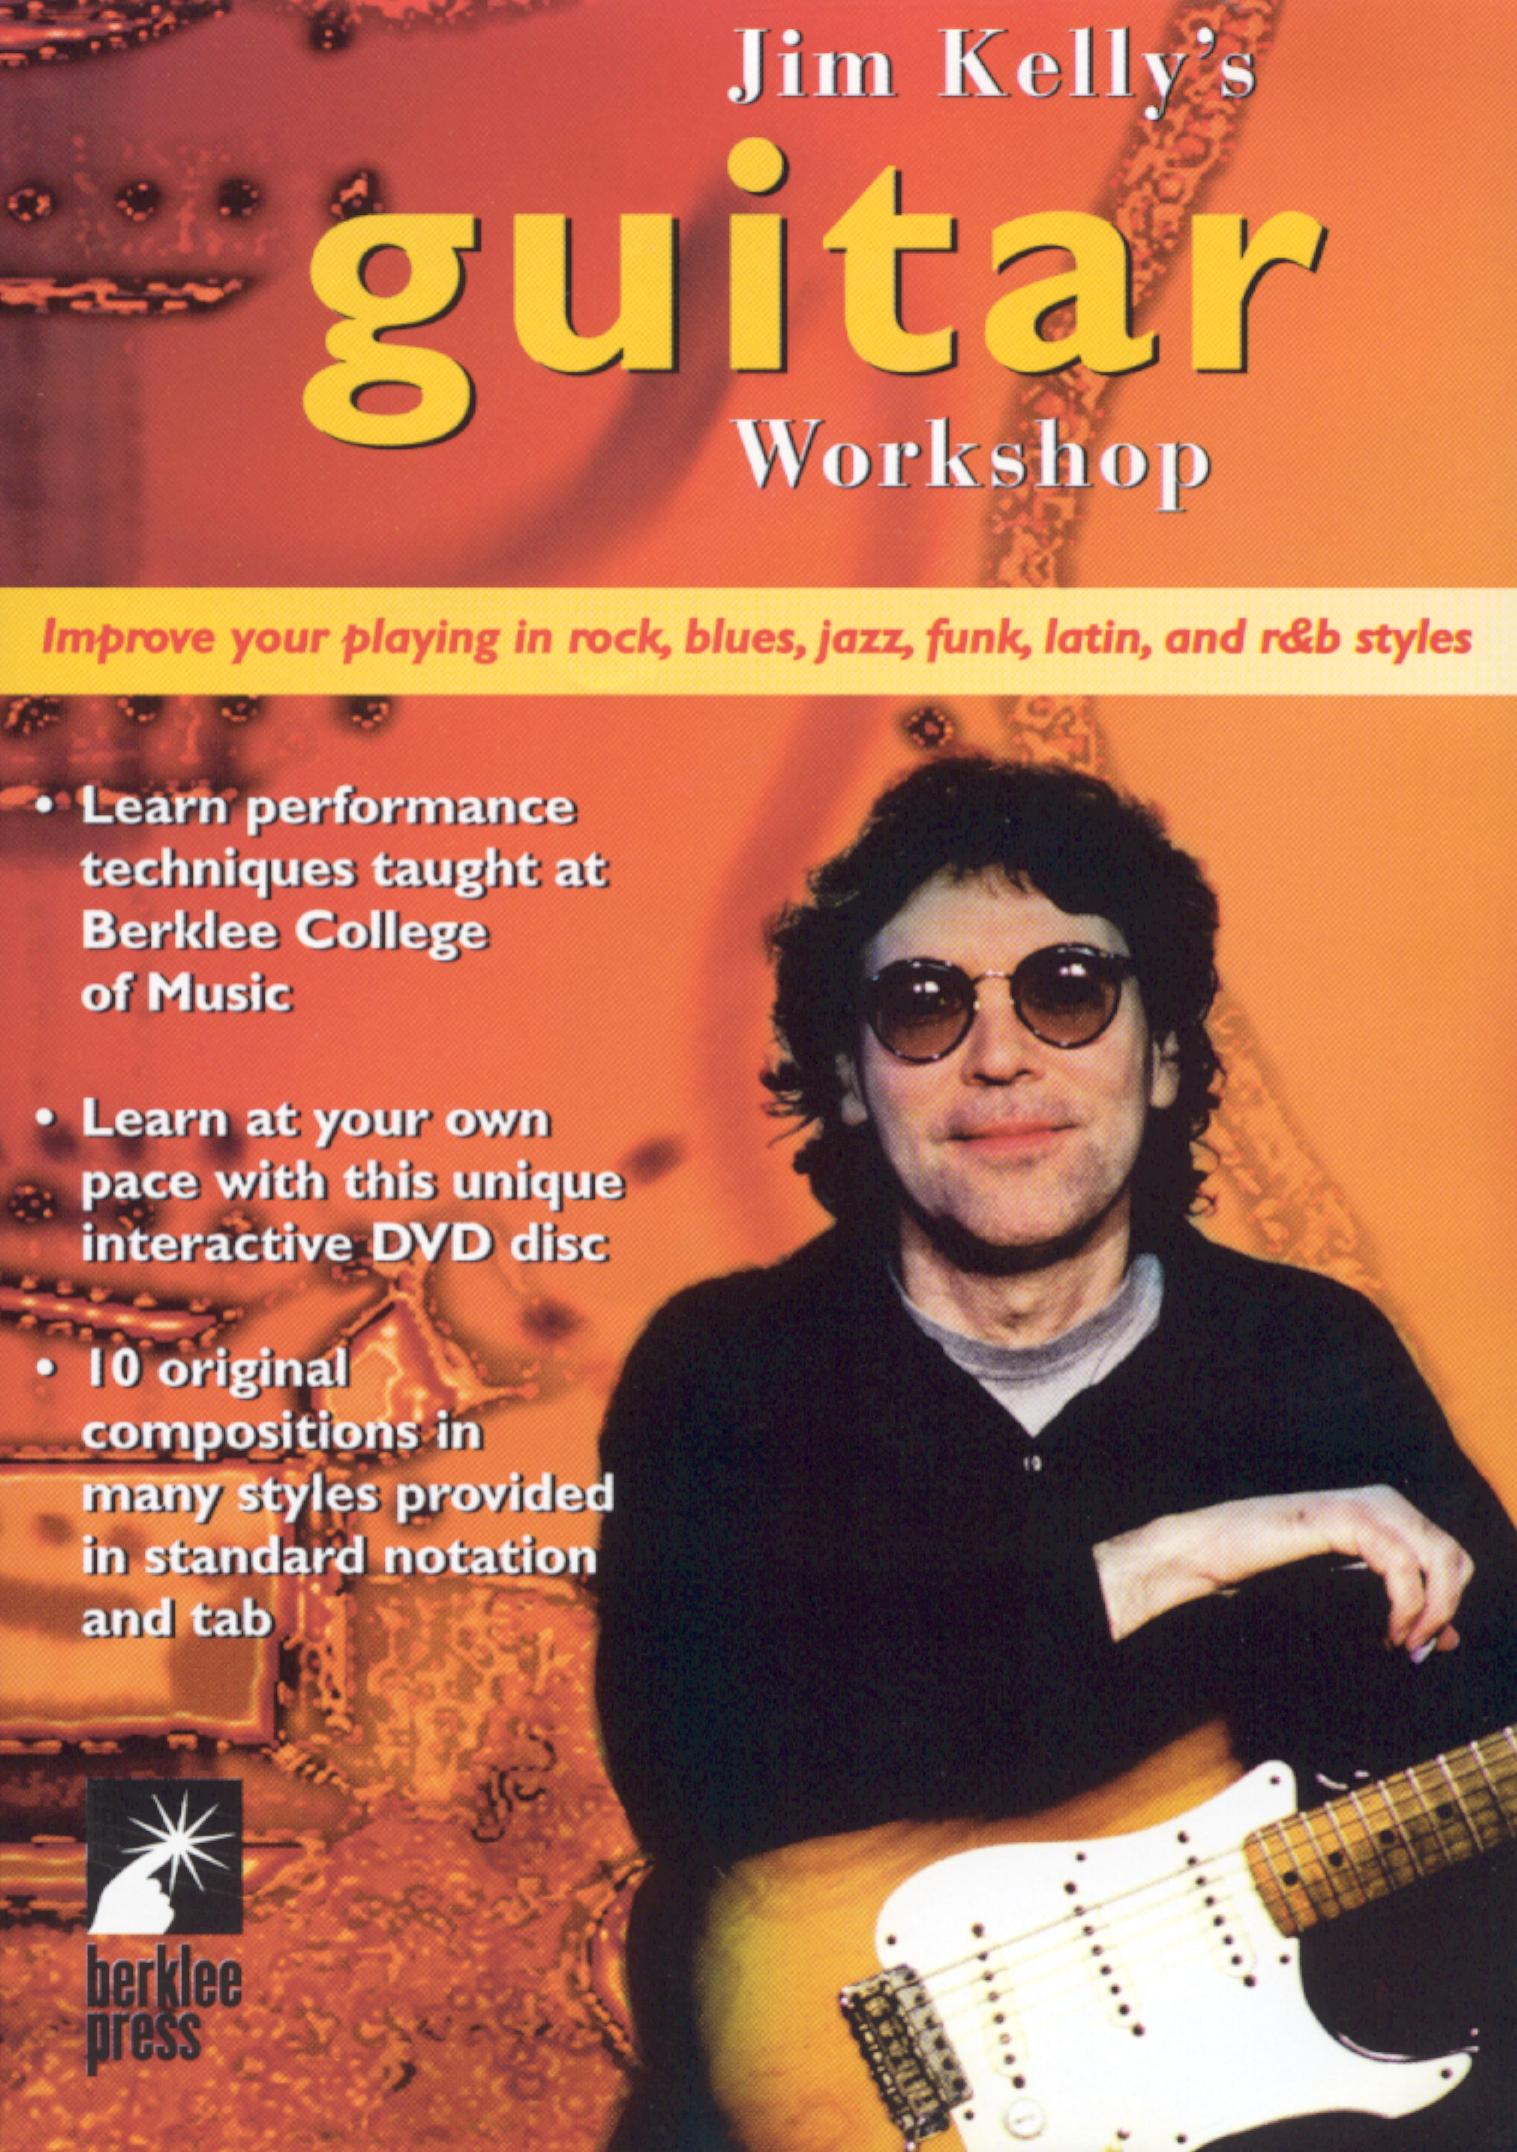 Jim Kelly's Guitar Workshop